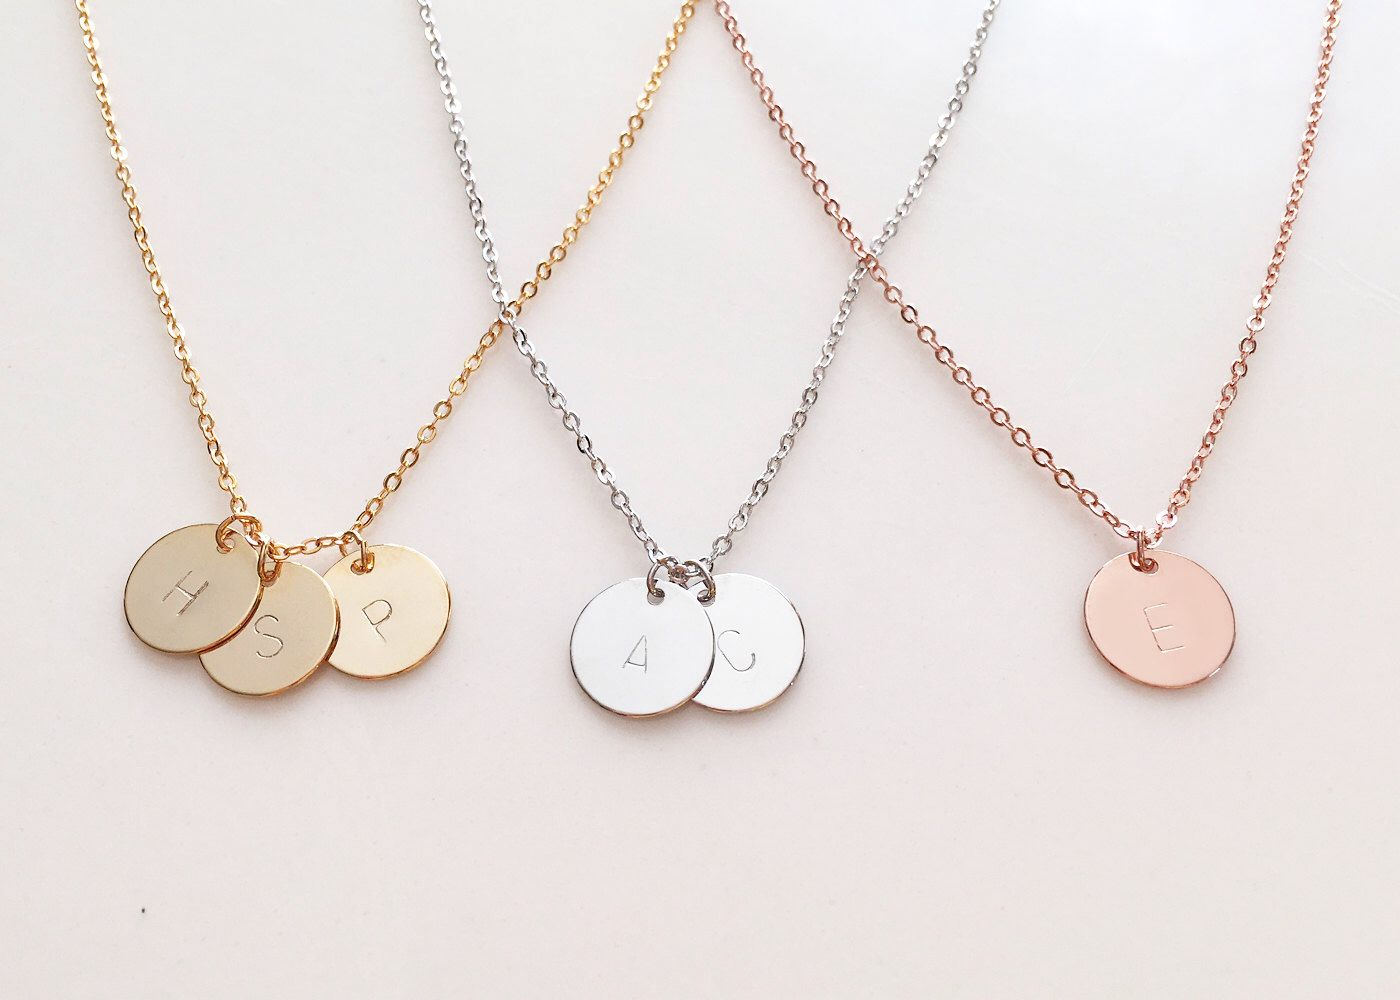 Delicate initial necklace gold letter necklace silver disc delicate initial necklace gold letter necklace silver disc necklace rose gold necklace mozeypictures Choice Image